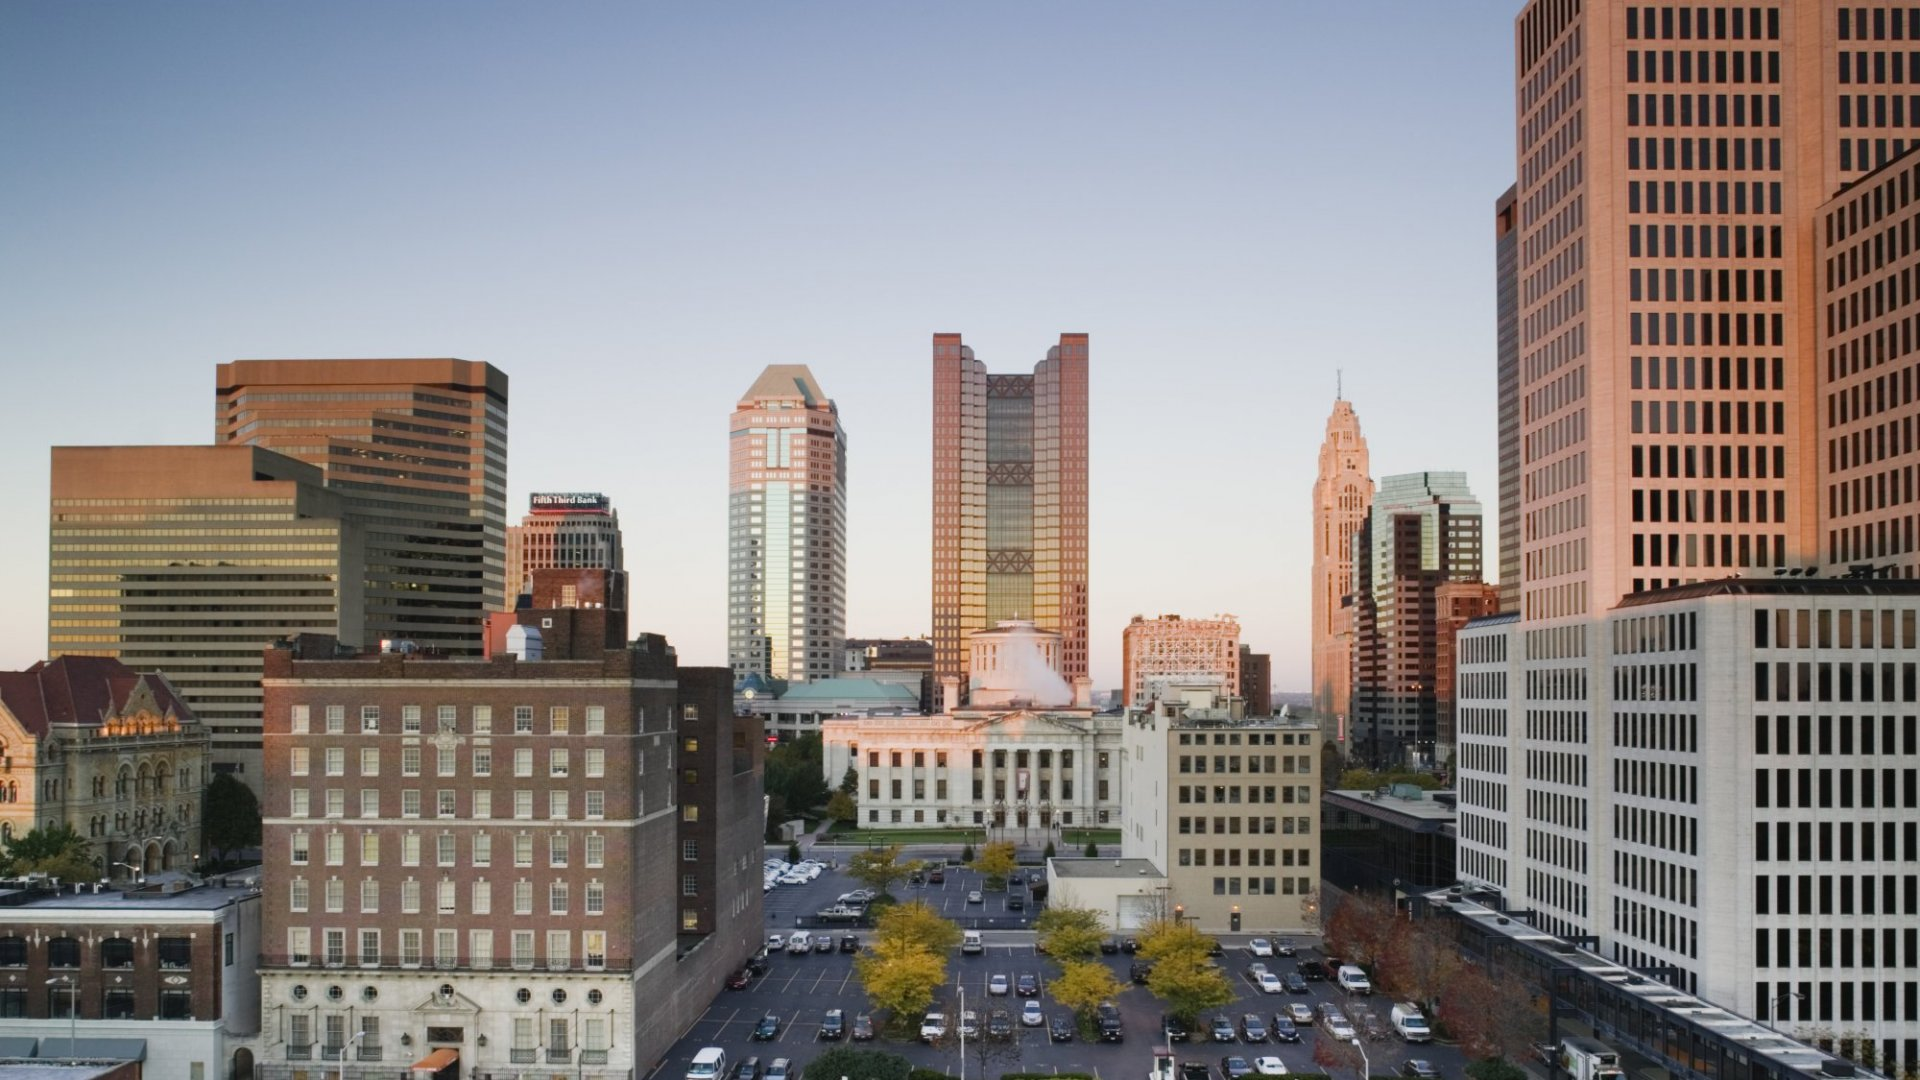 Columbus, Ohio, the winner of a recent $50m Smart City Challenge organized by the US Department of Transportation, is one of the cities working with Sidewalk Labs.